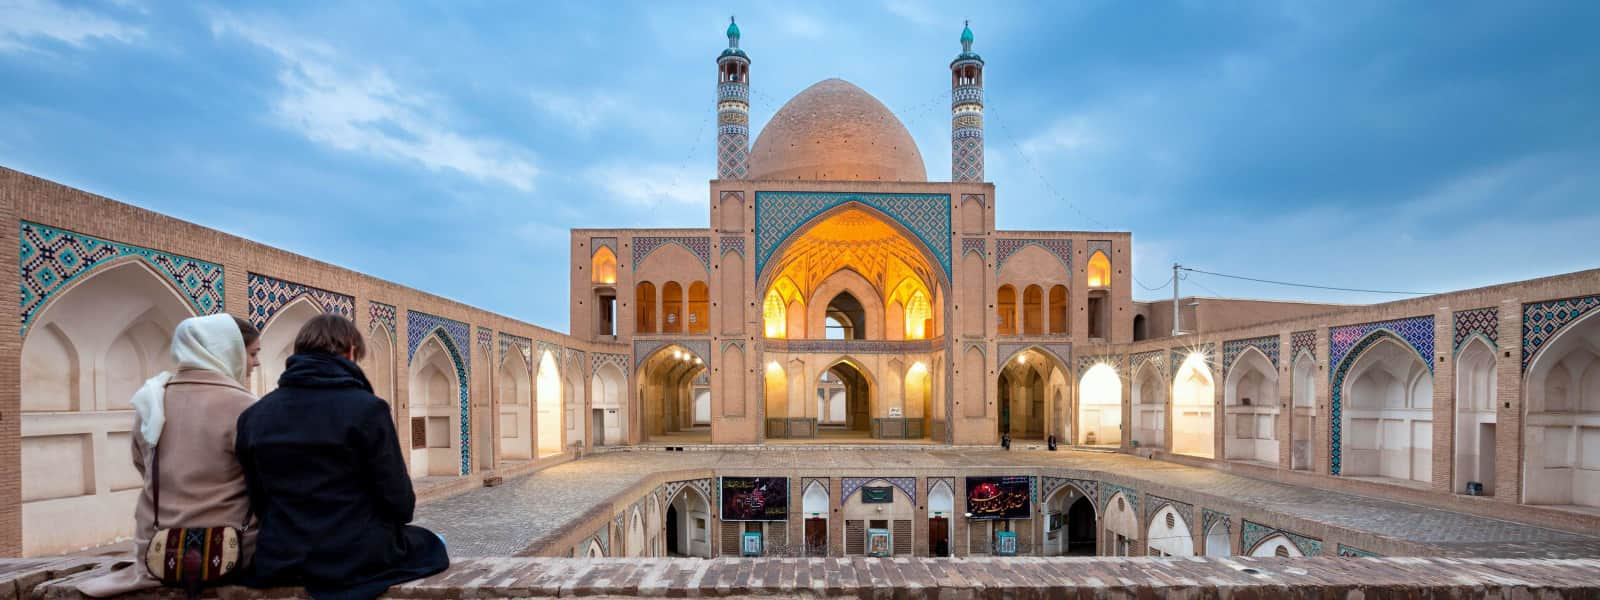 Sightseeing Tour of agha bozorg mosque